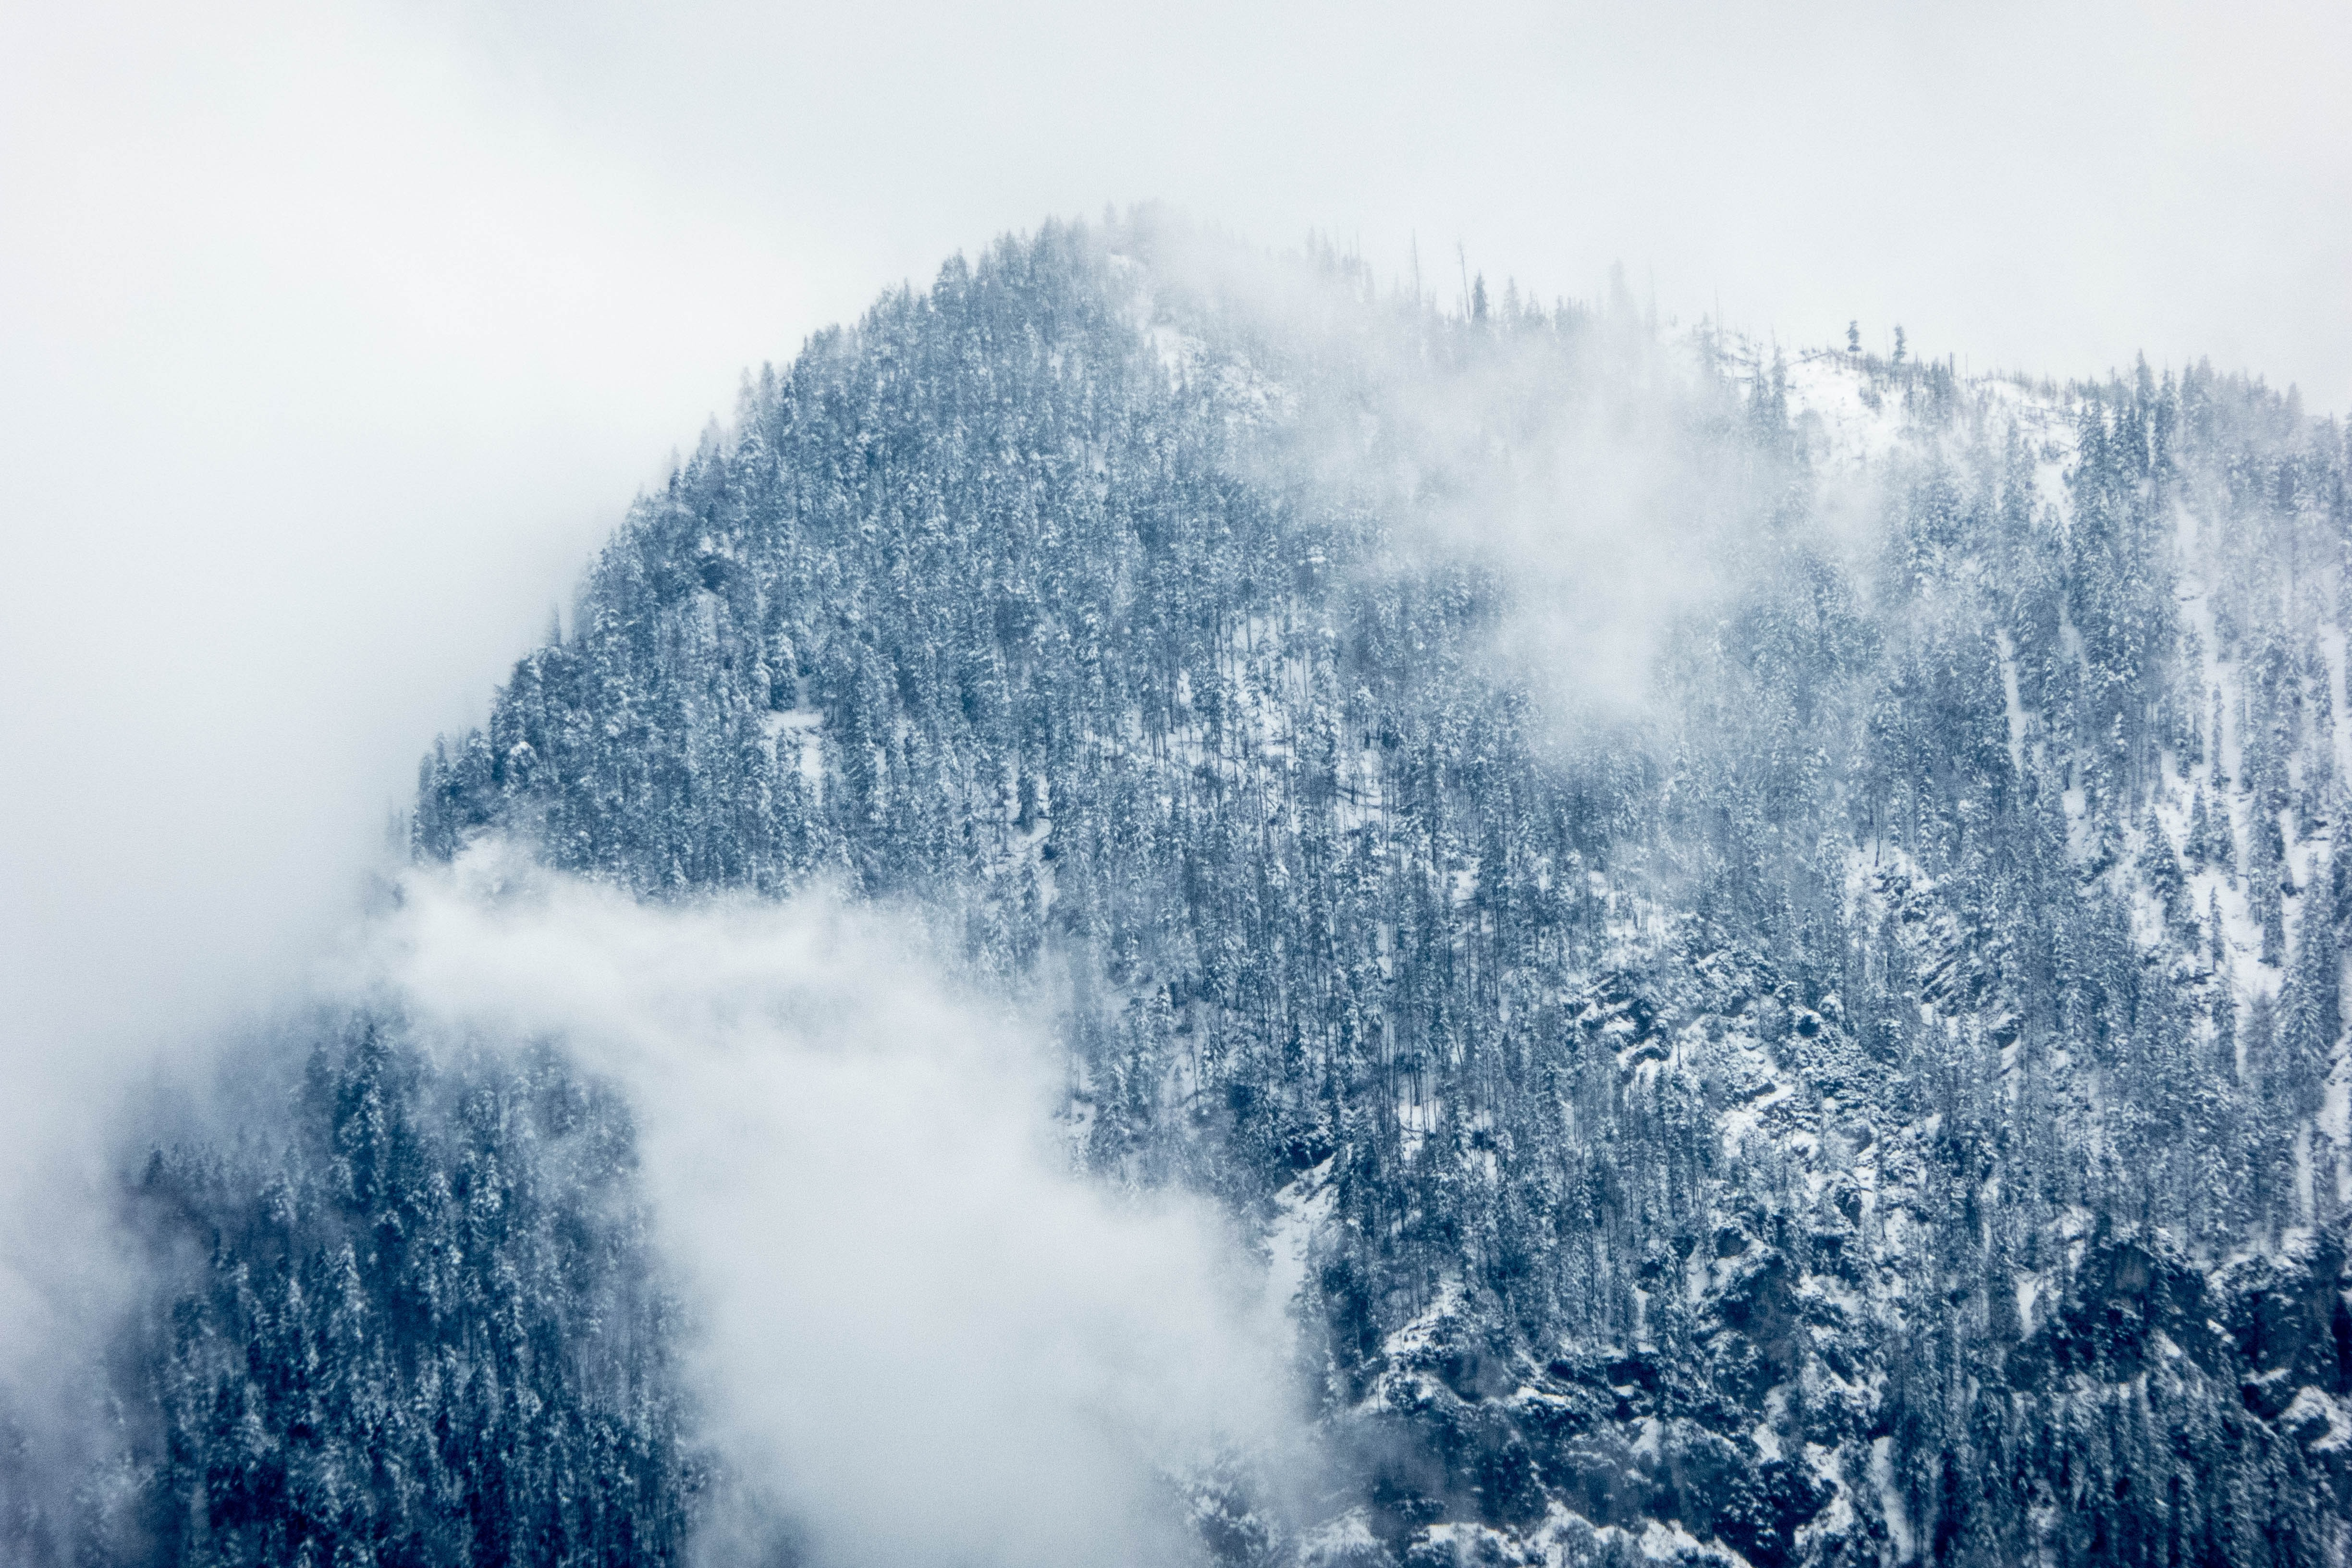 A tall wooded mountain wreathed in a thick mist